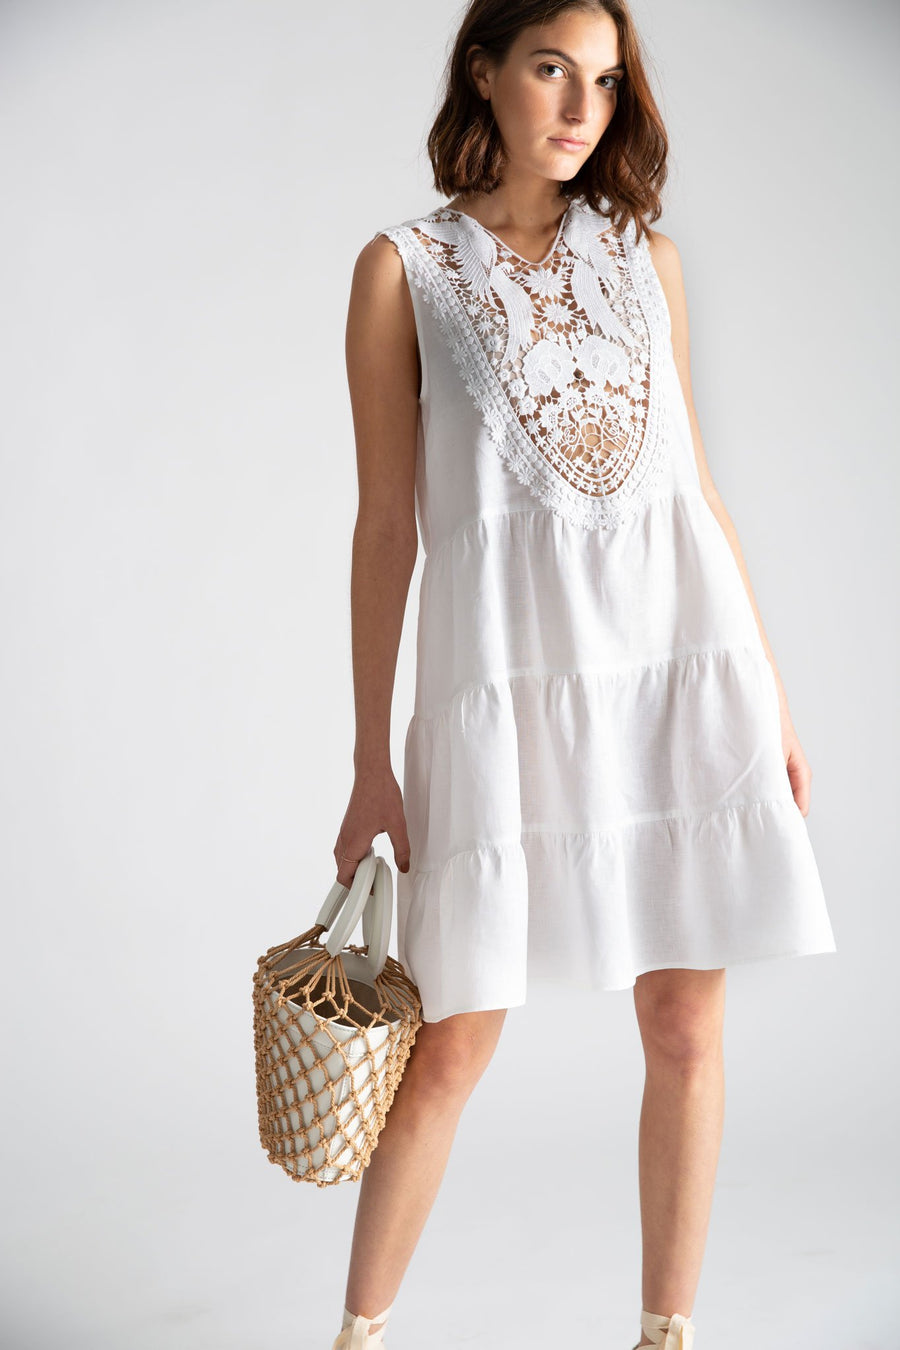 This is a photo of a woman wearing a white linen coverup dress that falls right about her knee and has 3 tiers. The front of the dress has a lace yolk that peeks through to her bikini top underneath. She is holding a white bag with natural netting over it.